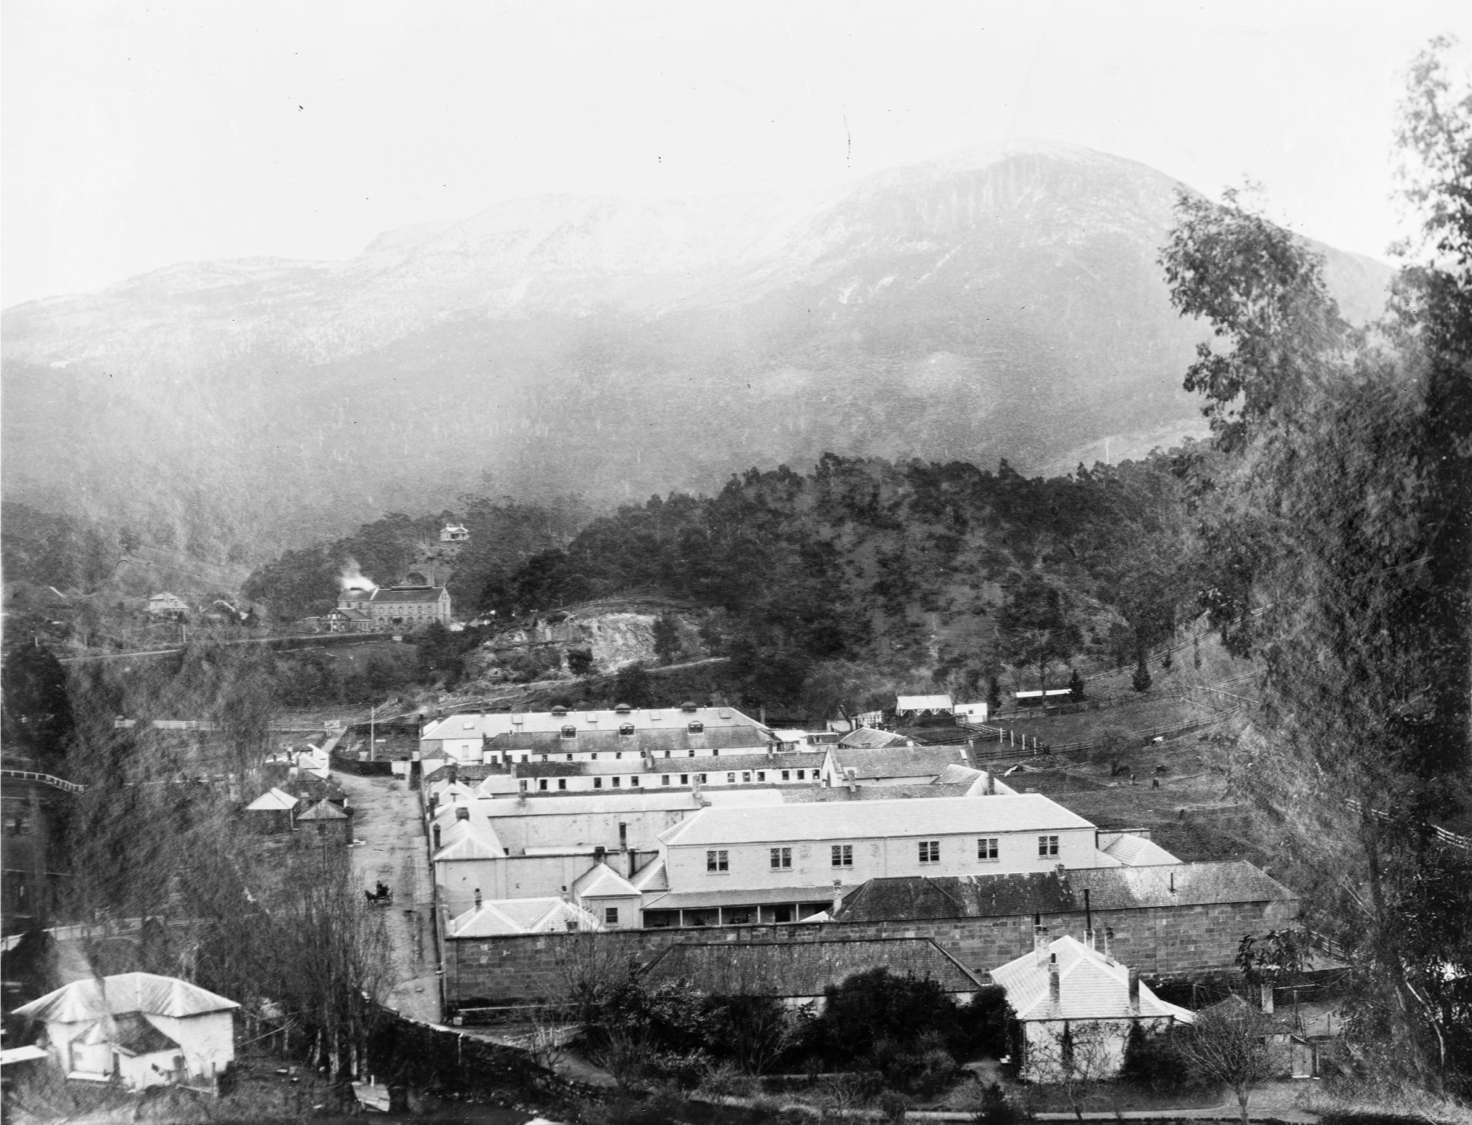 Cascades Female Factory, Van Diemen's Land, Hobart Town, Tasmania, Proctor's Quarry, 1844, Sarah Moses, Tell the World I Died for Love, St. John's Cemetery Project, Old Parramattans